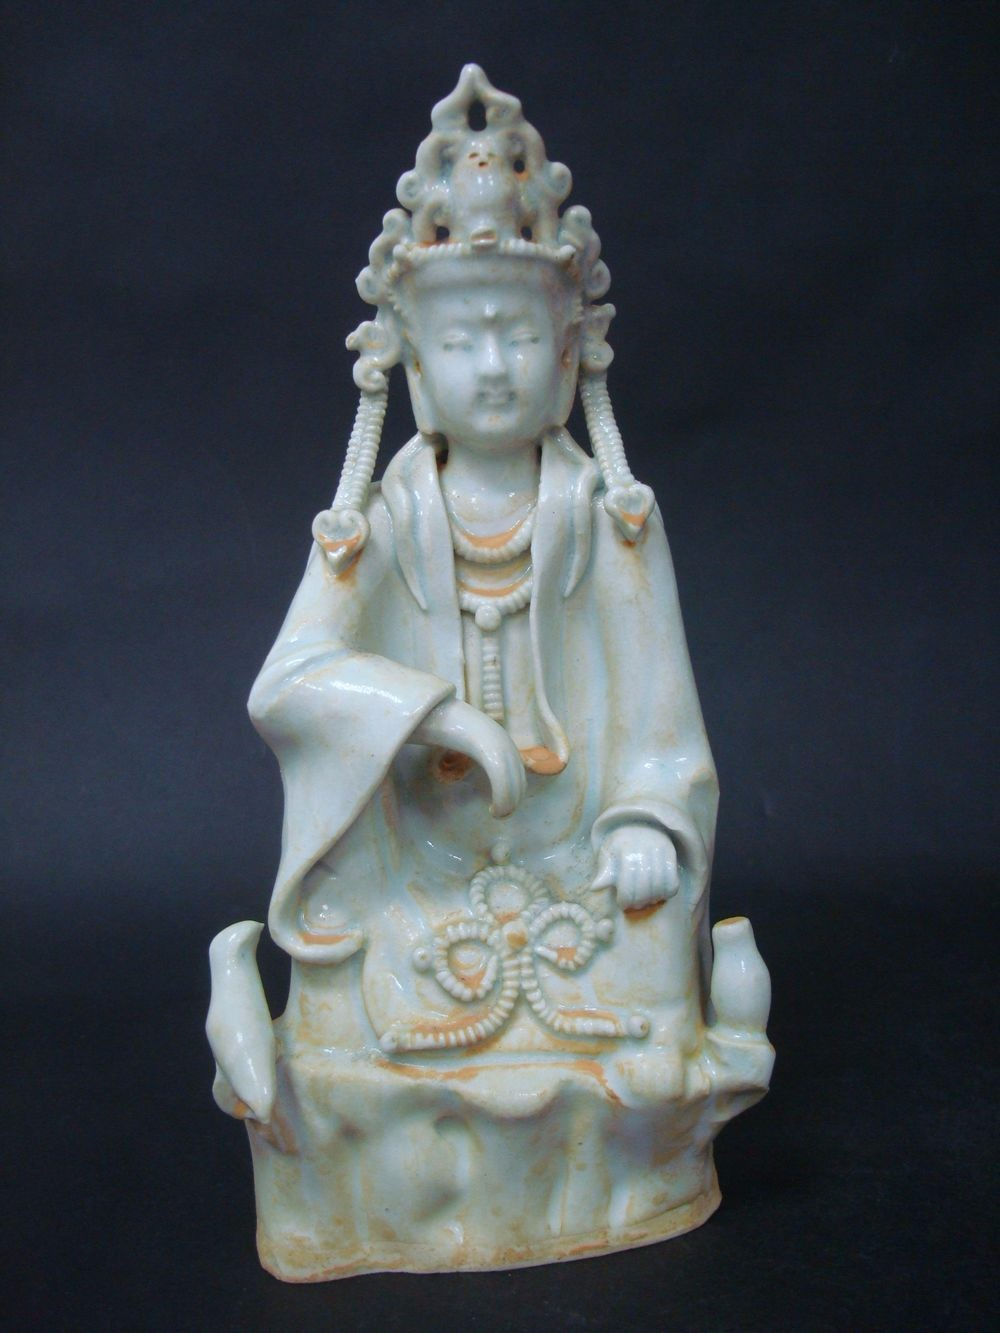 Unusual Old Chinese Celadon Porcelain GuanYin Buddha Statue Sculpture QB026